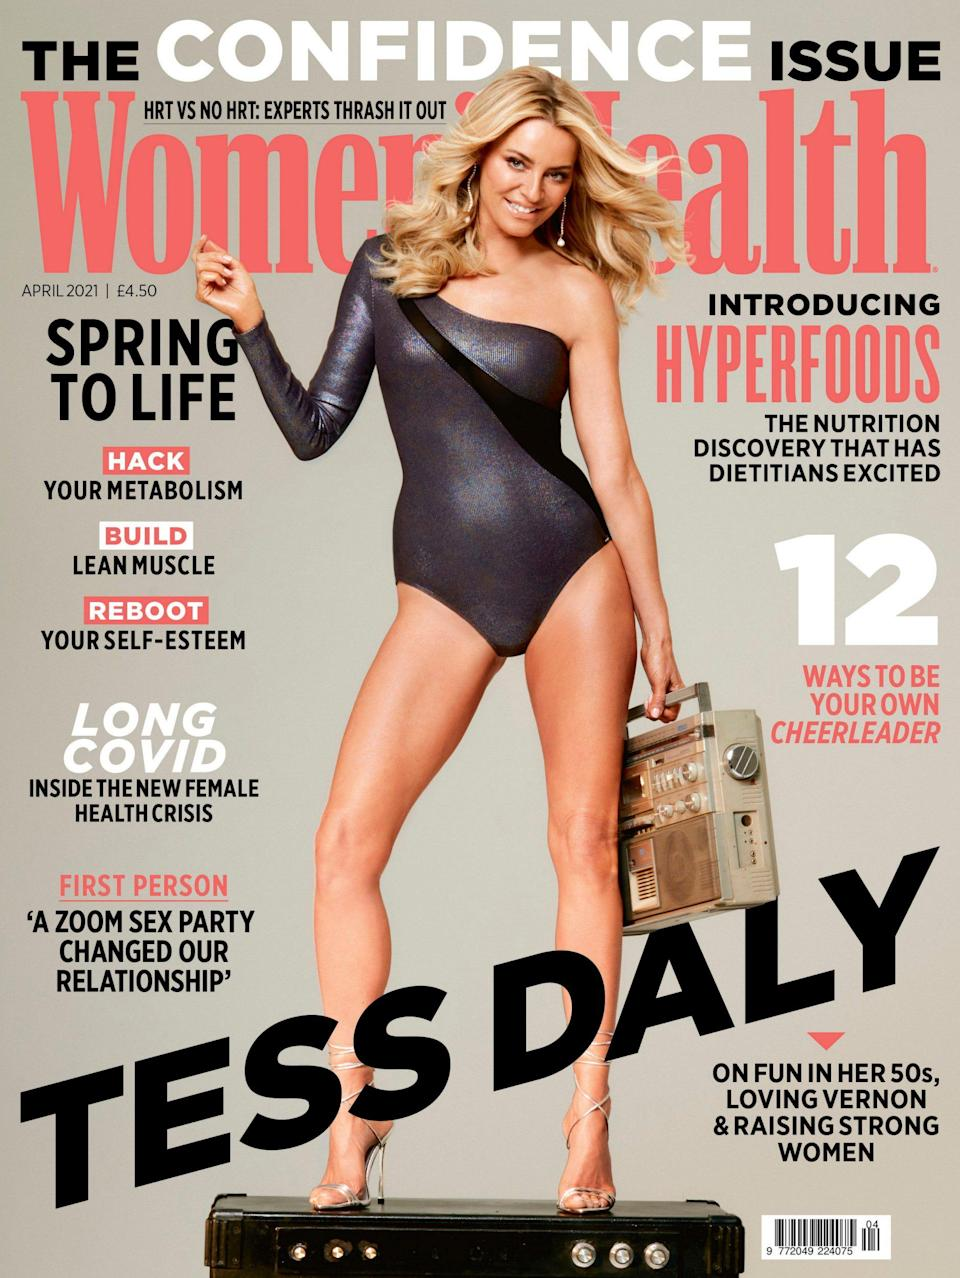 Tess Daly is on the cover of April's issue of Women's Health UK - Pete Pedonomou / Women's Health UK